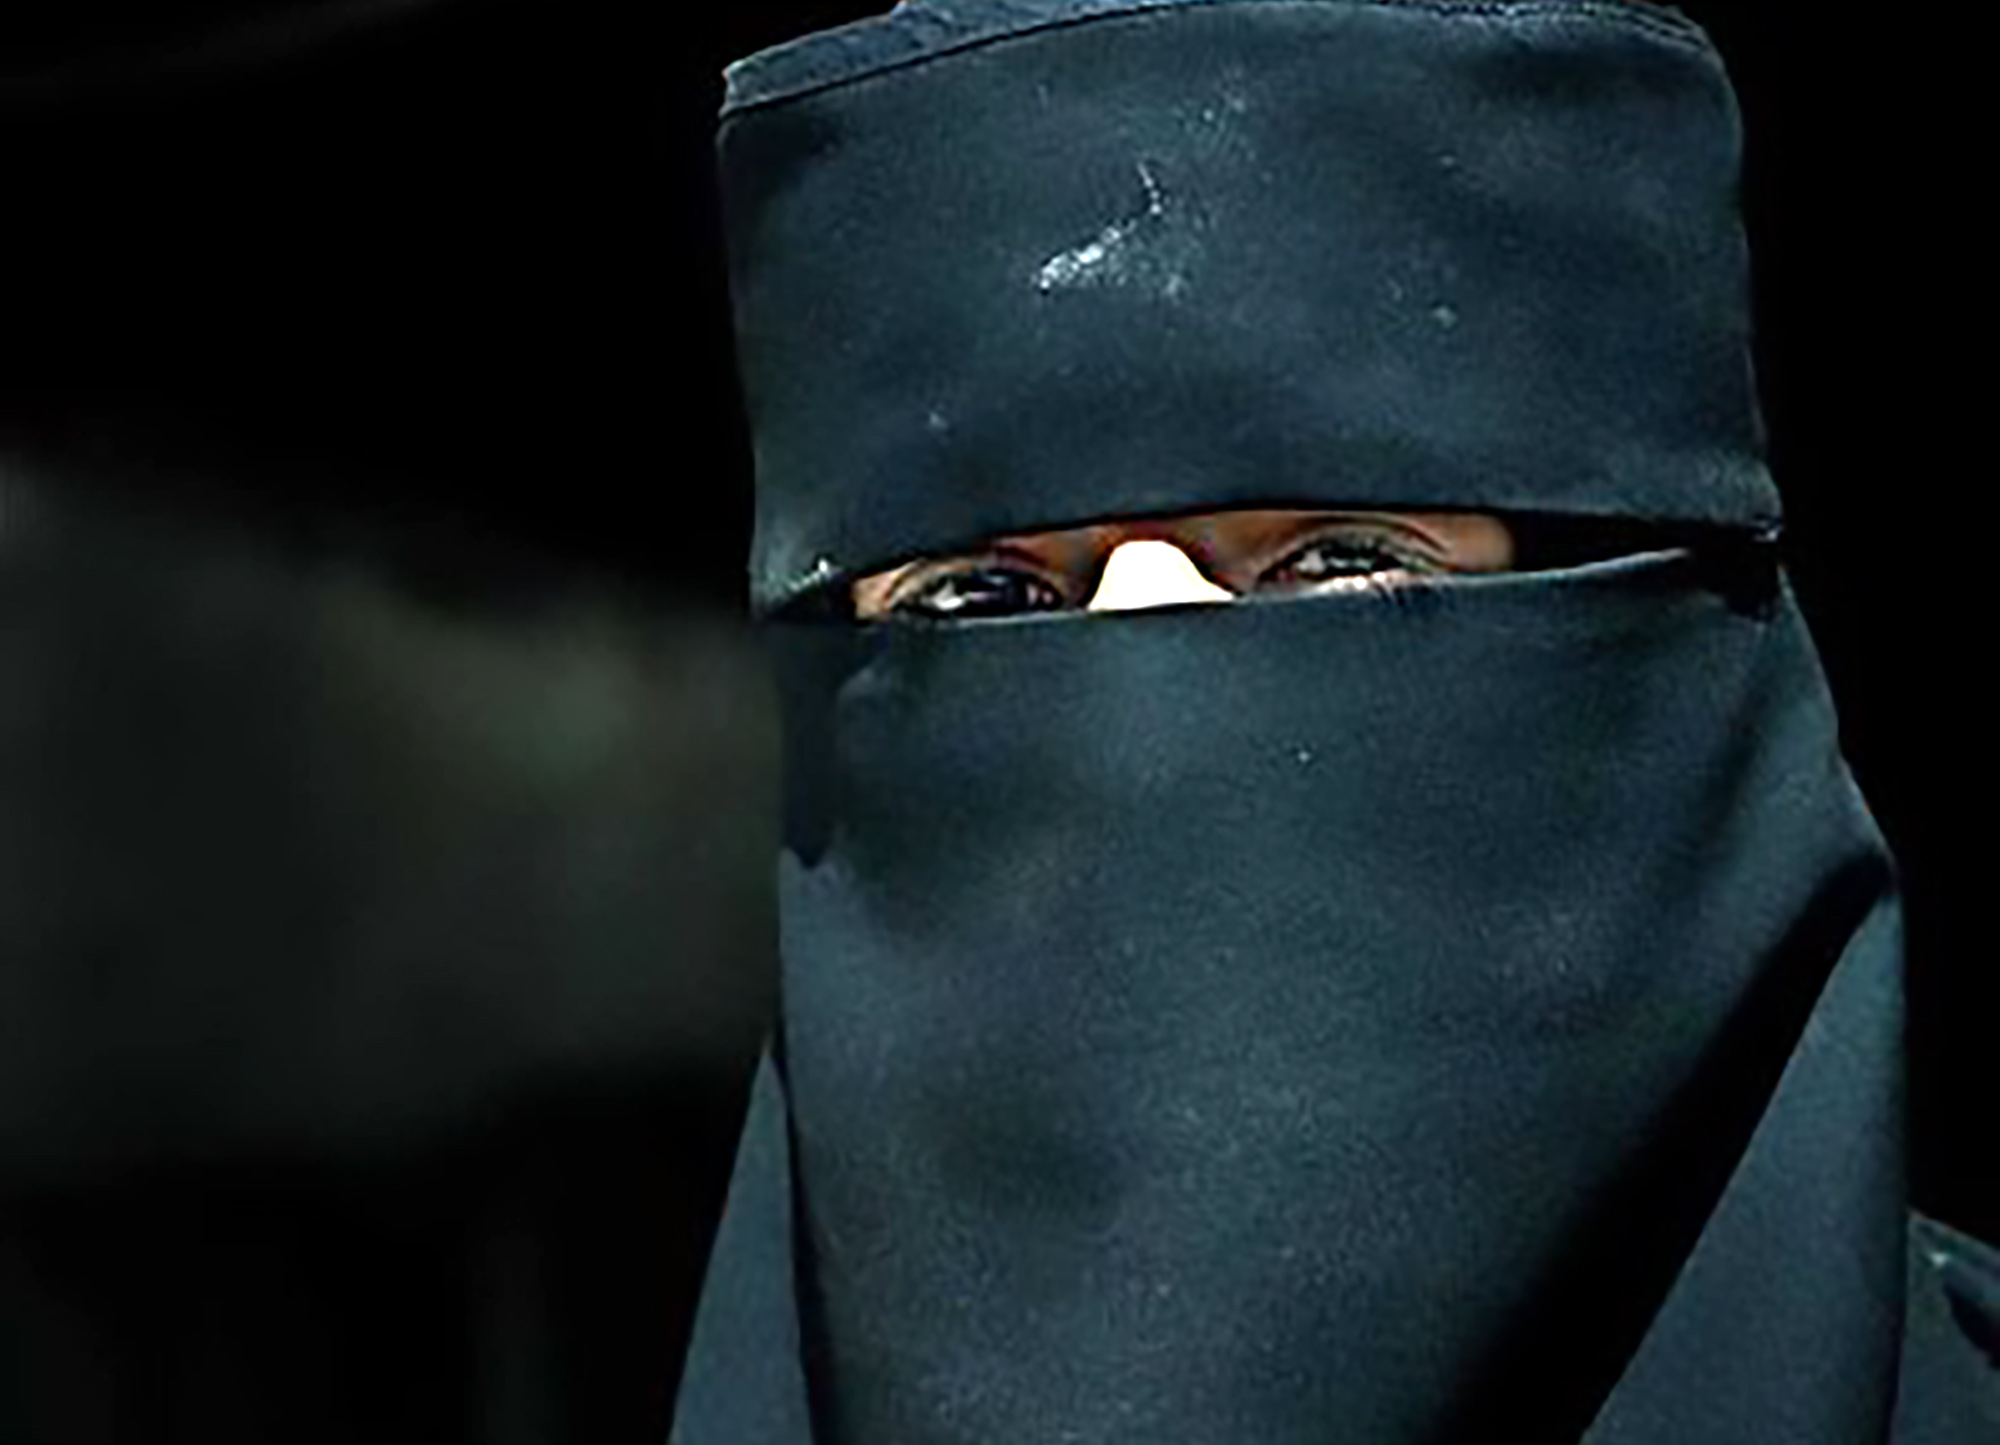 State To Pay 5K To Muslim Woman Over Headscarf Insult